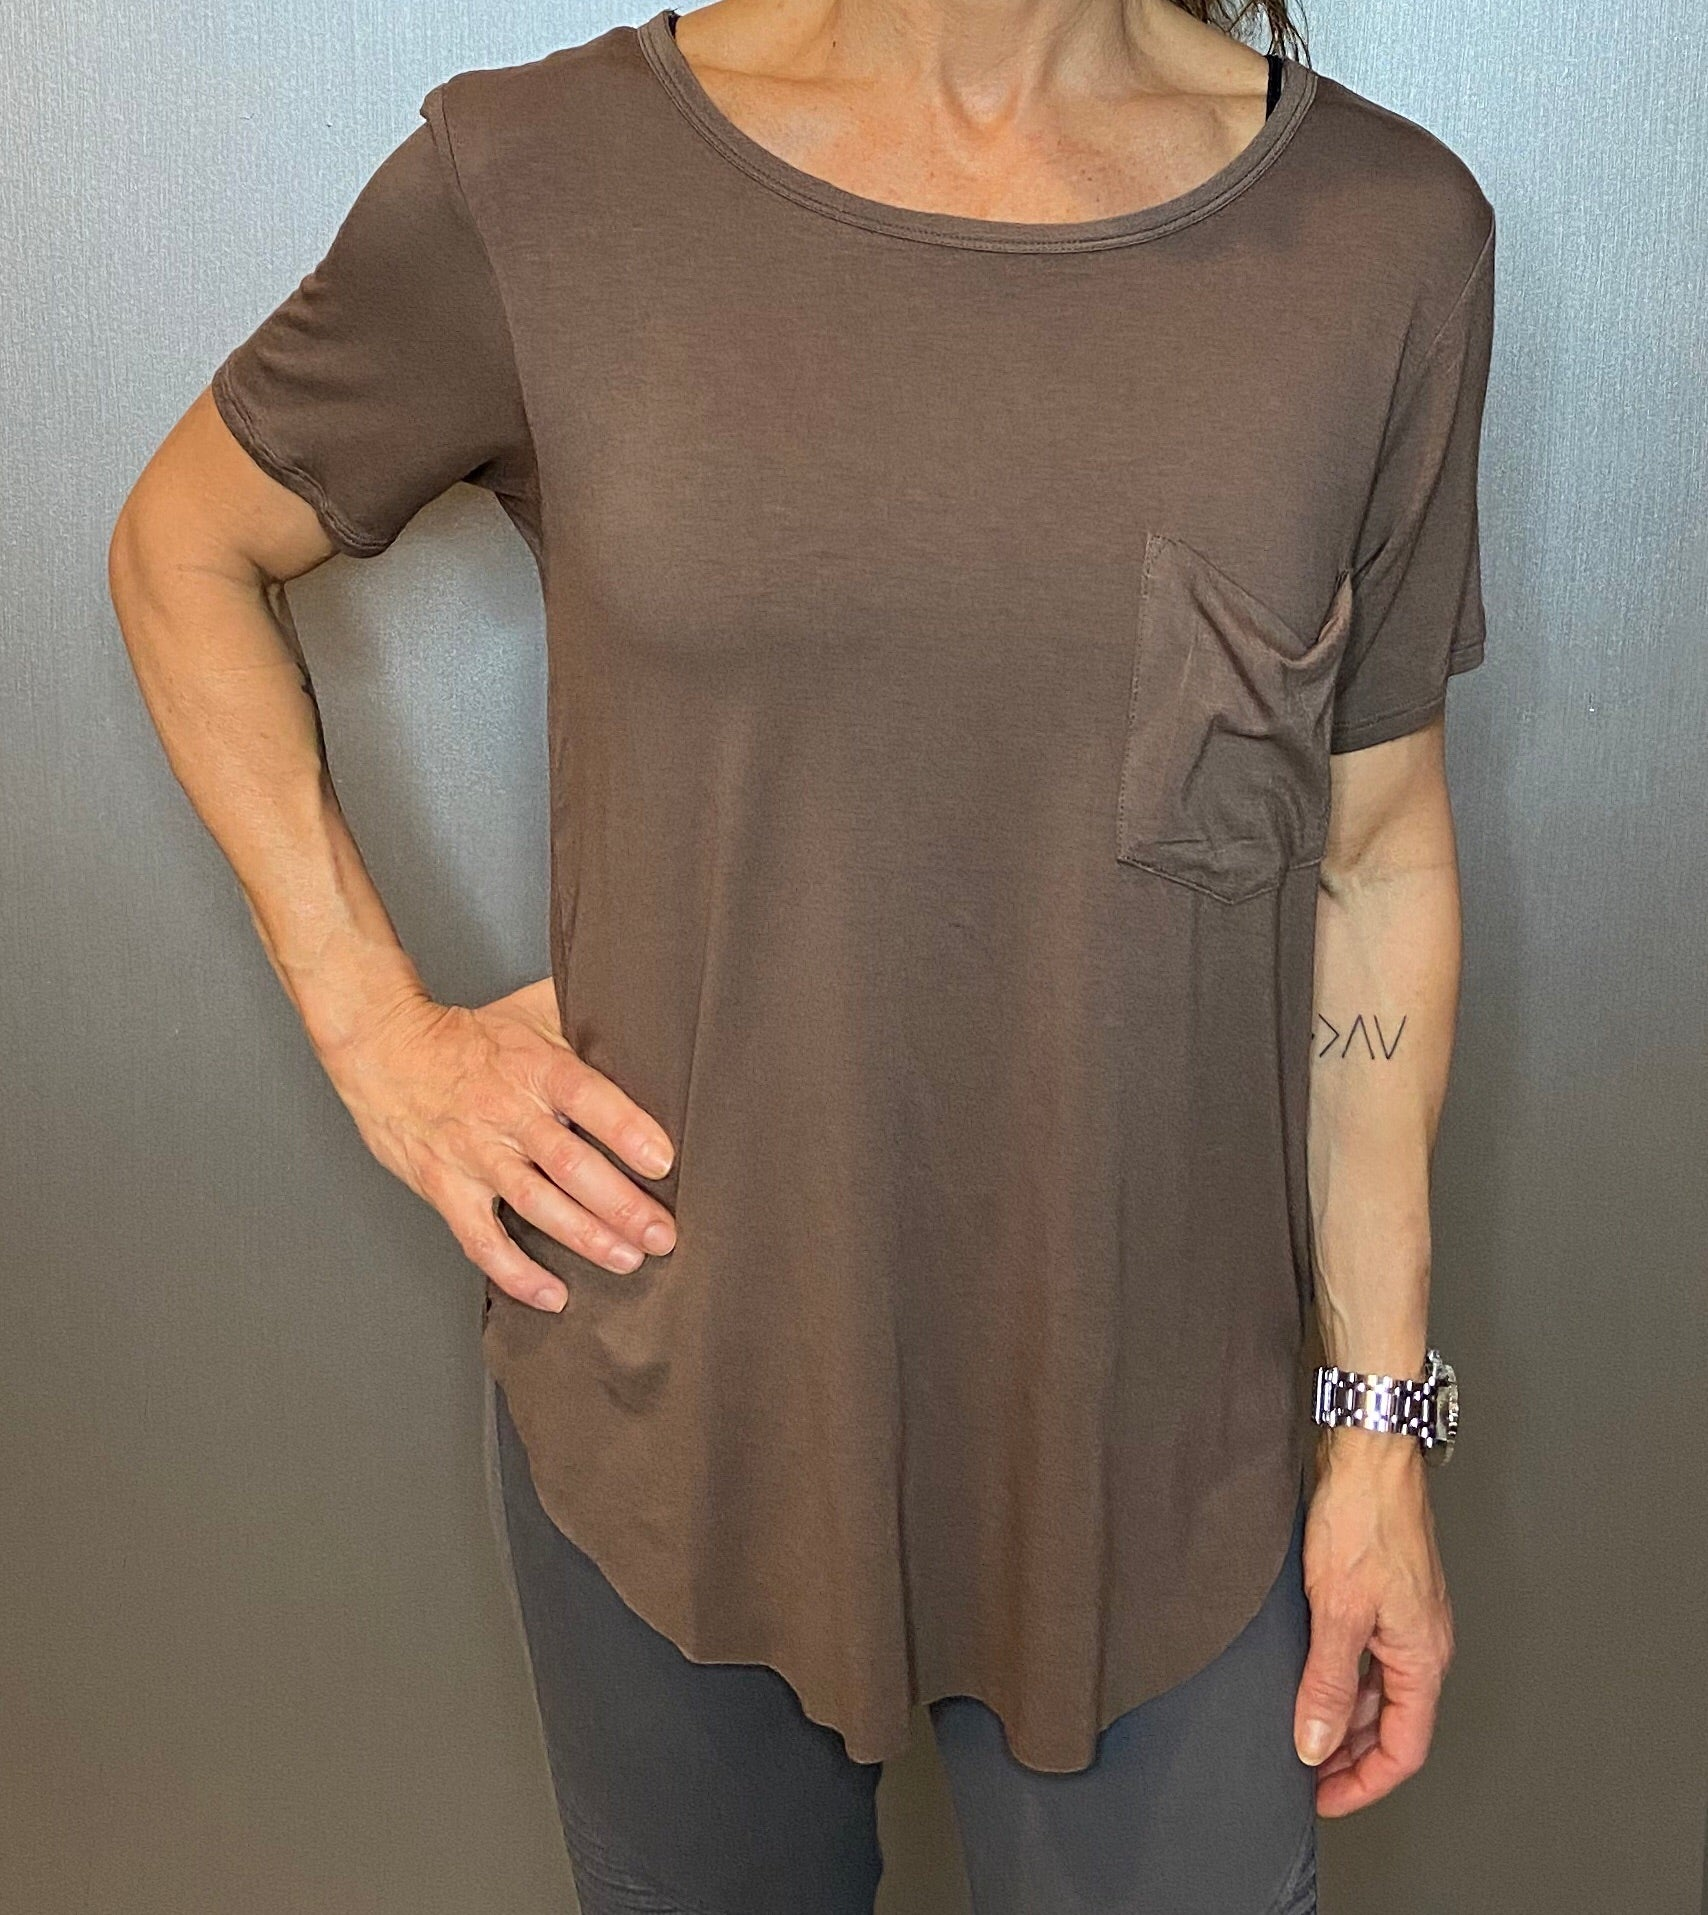 Scoop neck slouchy pocket tee